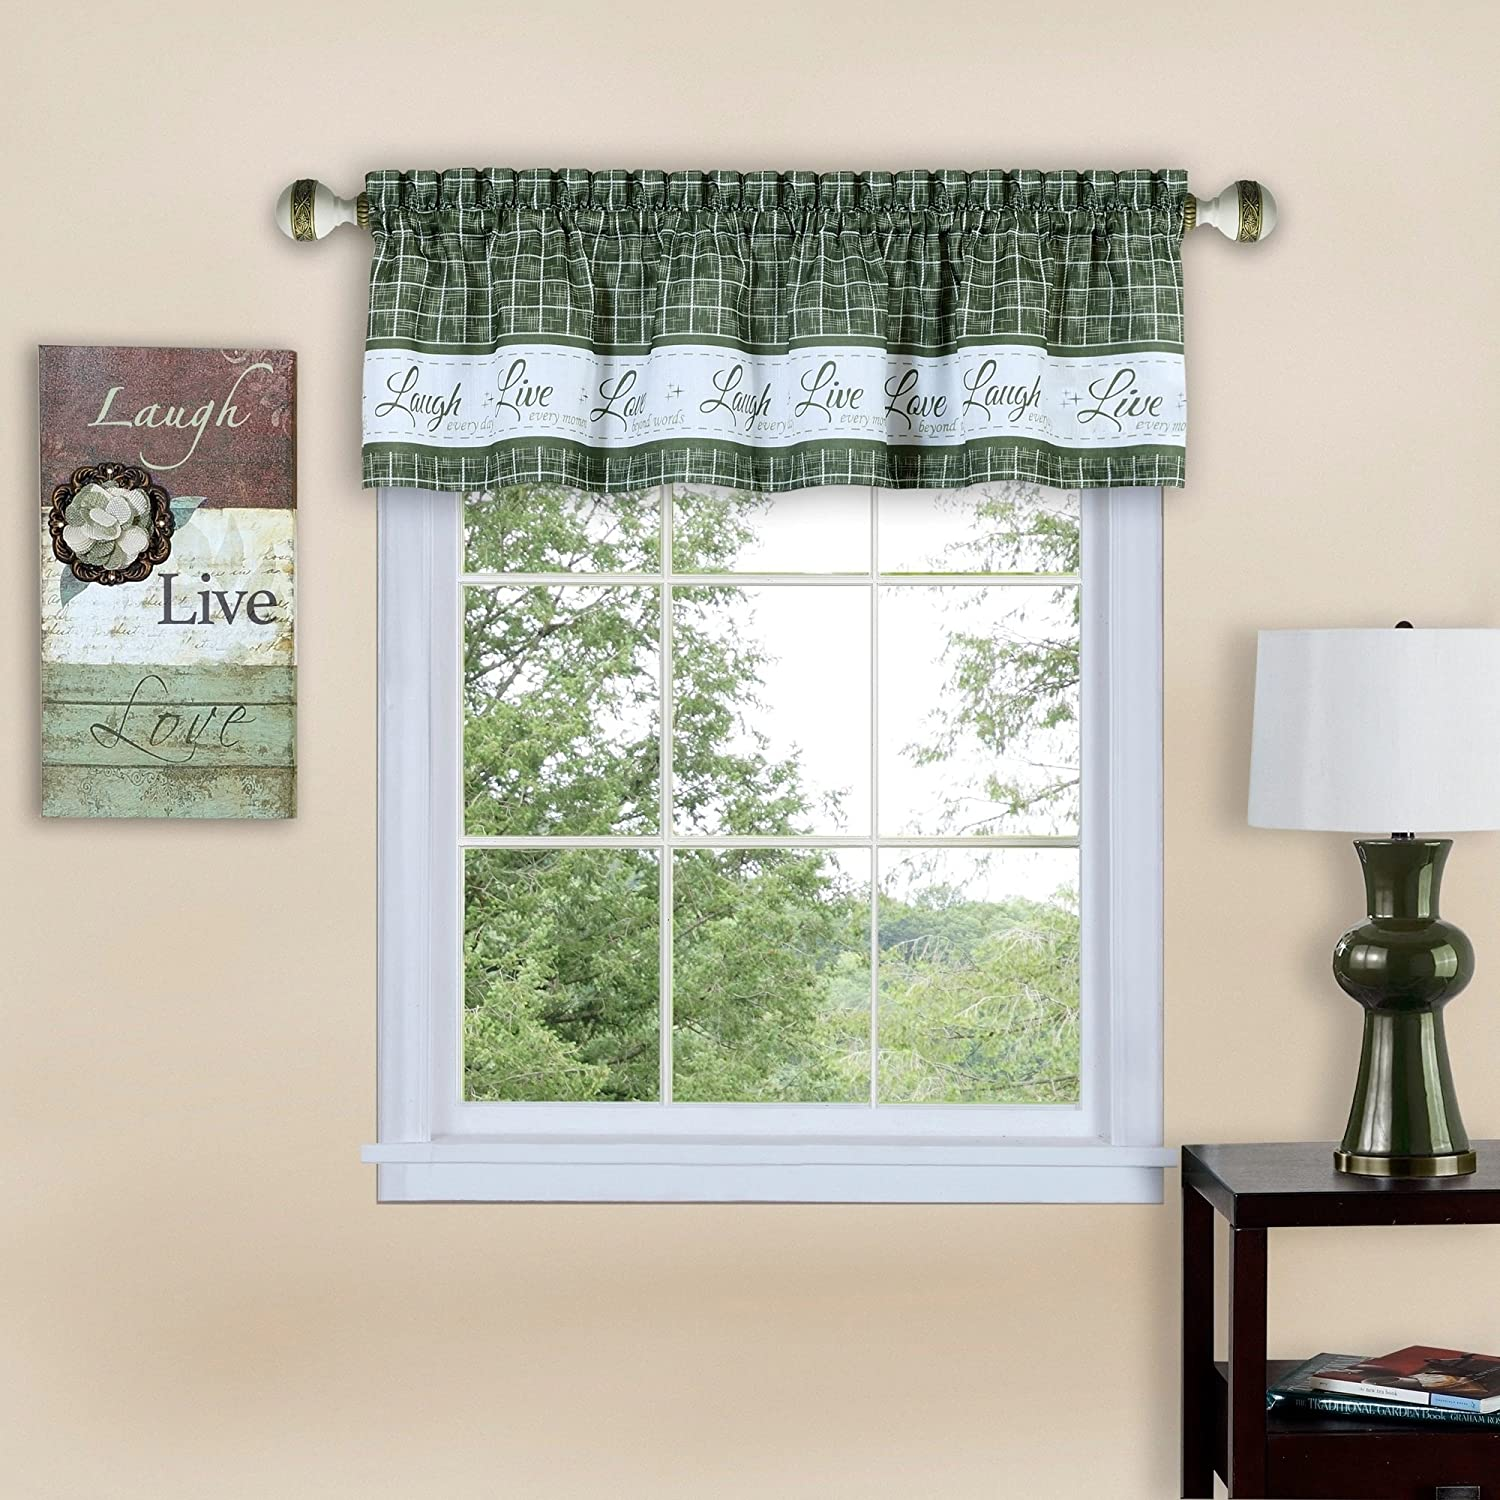 "Achim Home Furnishings Achim Home Imports Live, Love, Laugh Window Curtain Valance 58"" x 14"", Green"